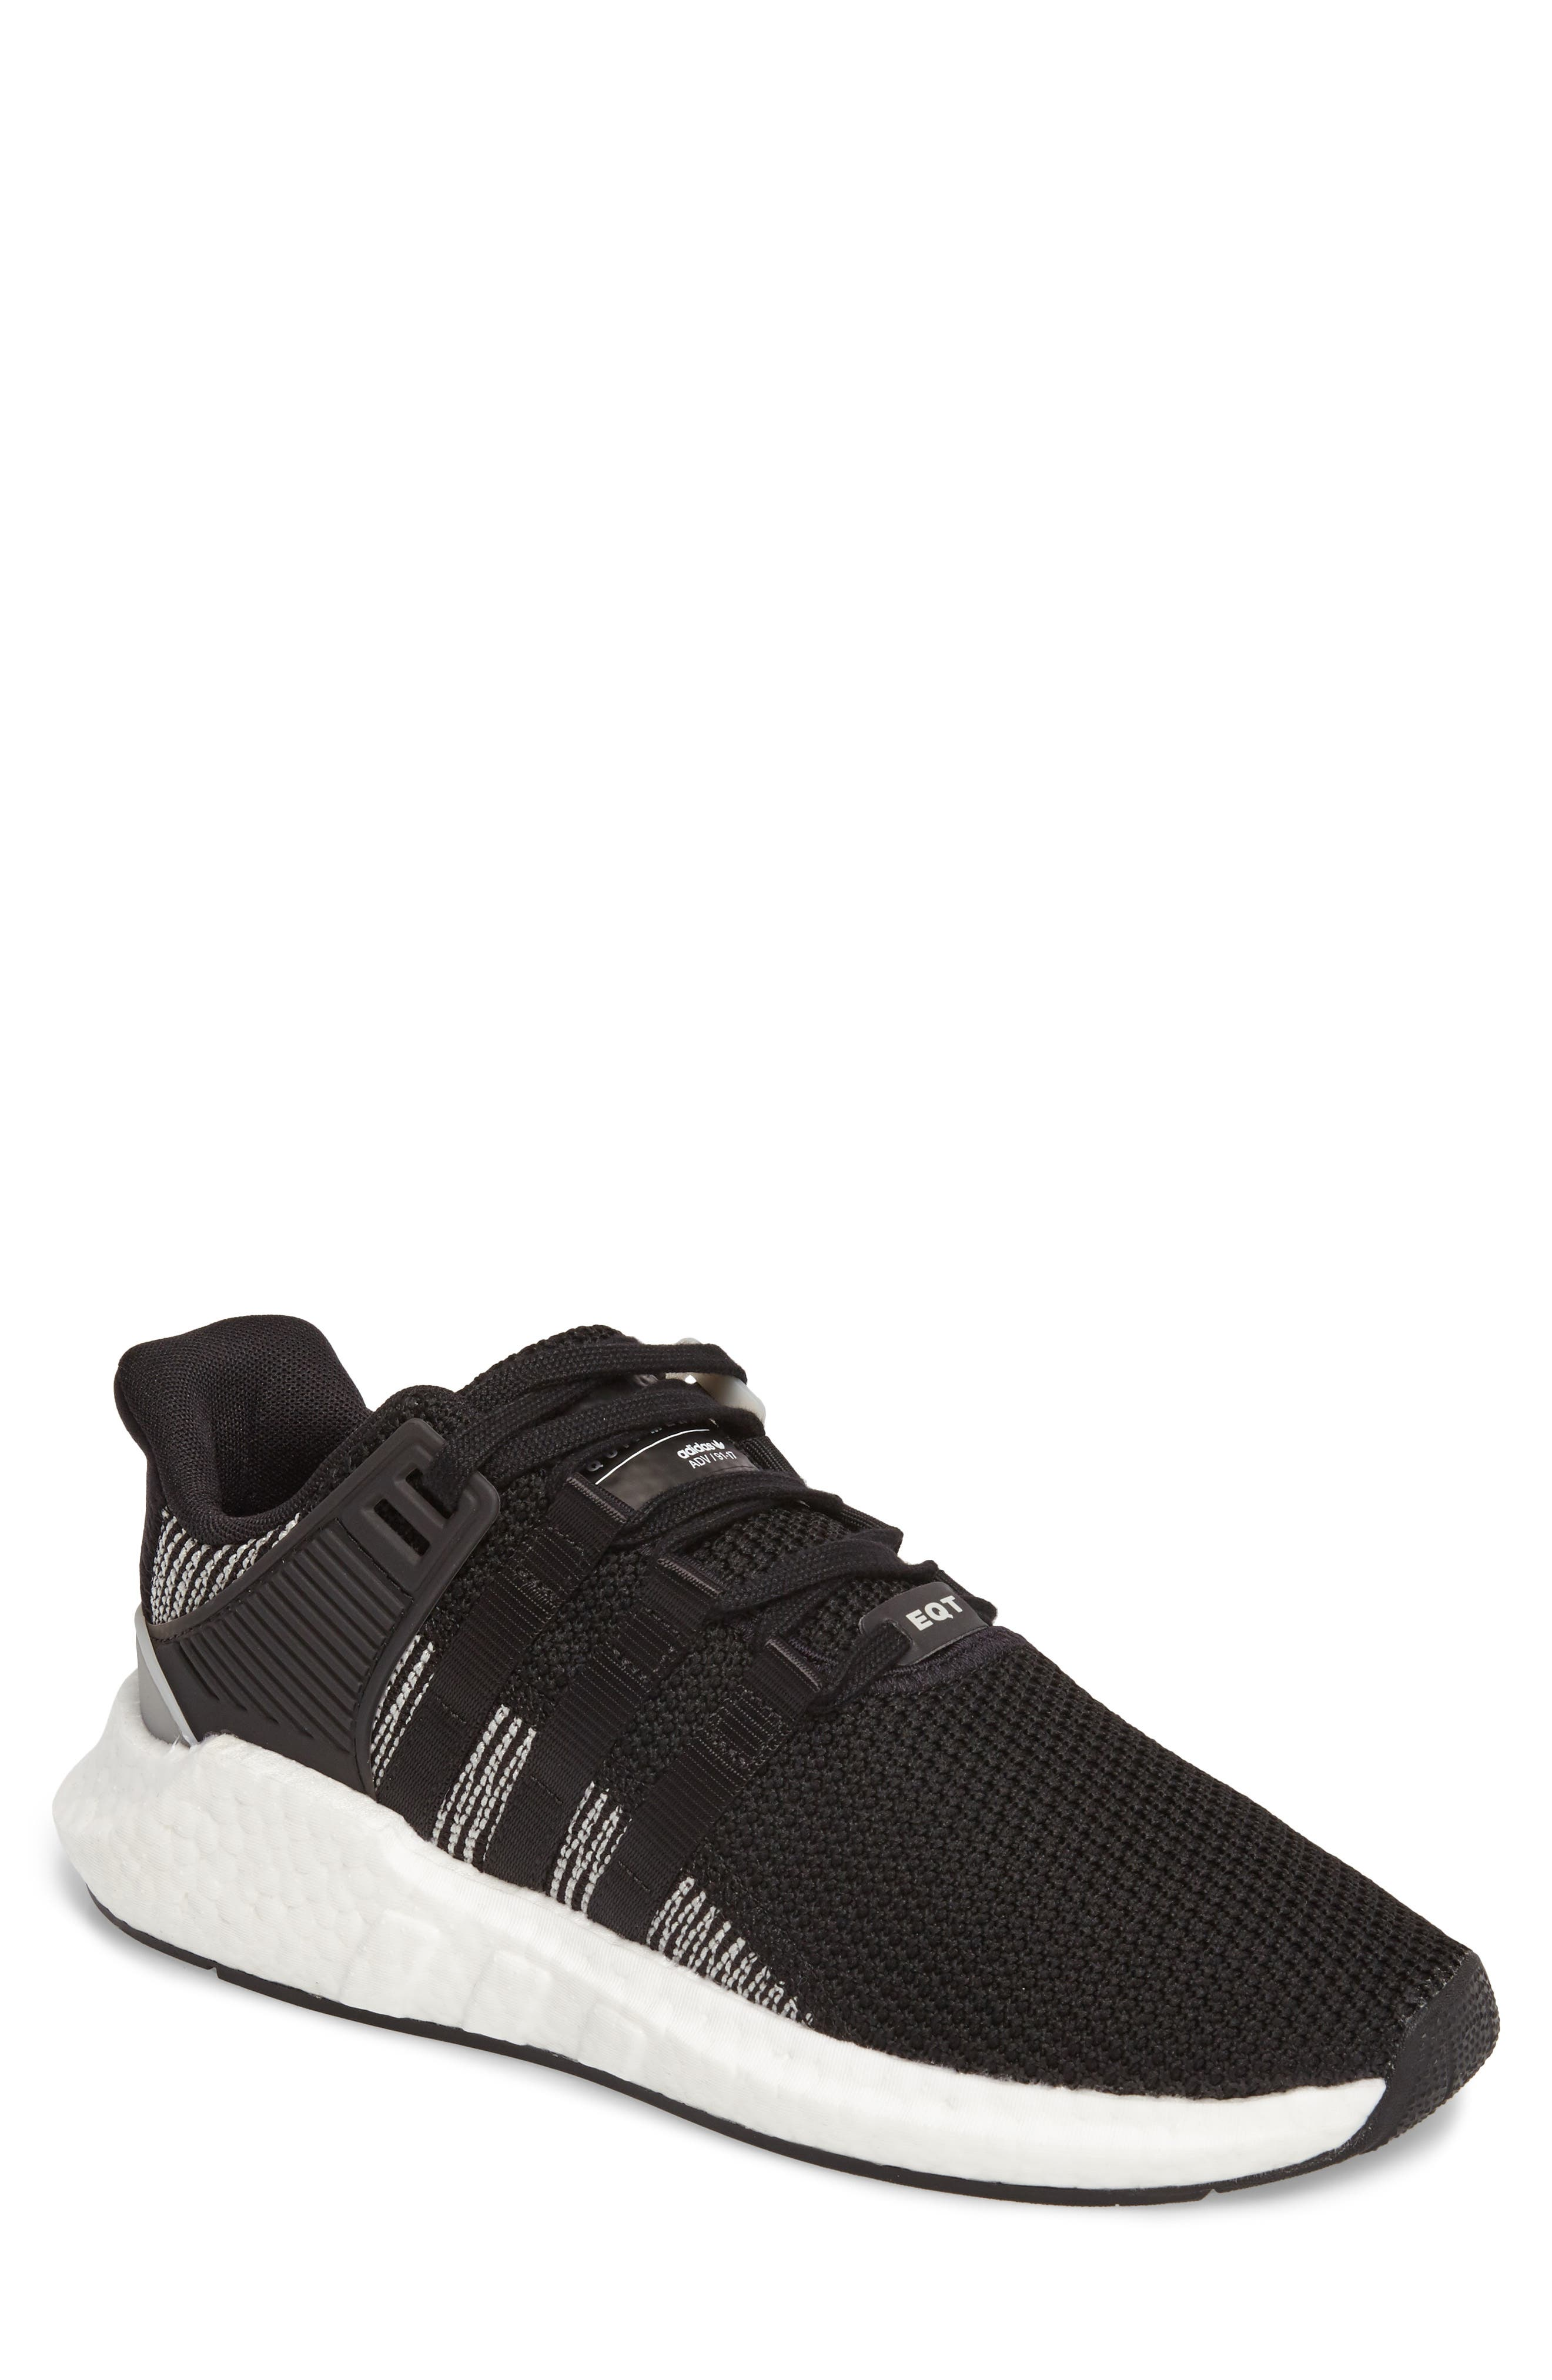 EQT Support 93/17 Sneaker,                             Main thumbnail 1, color,                             Core Black/ Core Black/ White